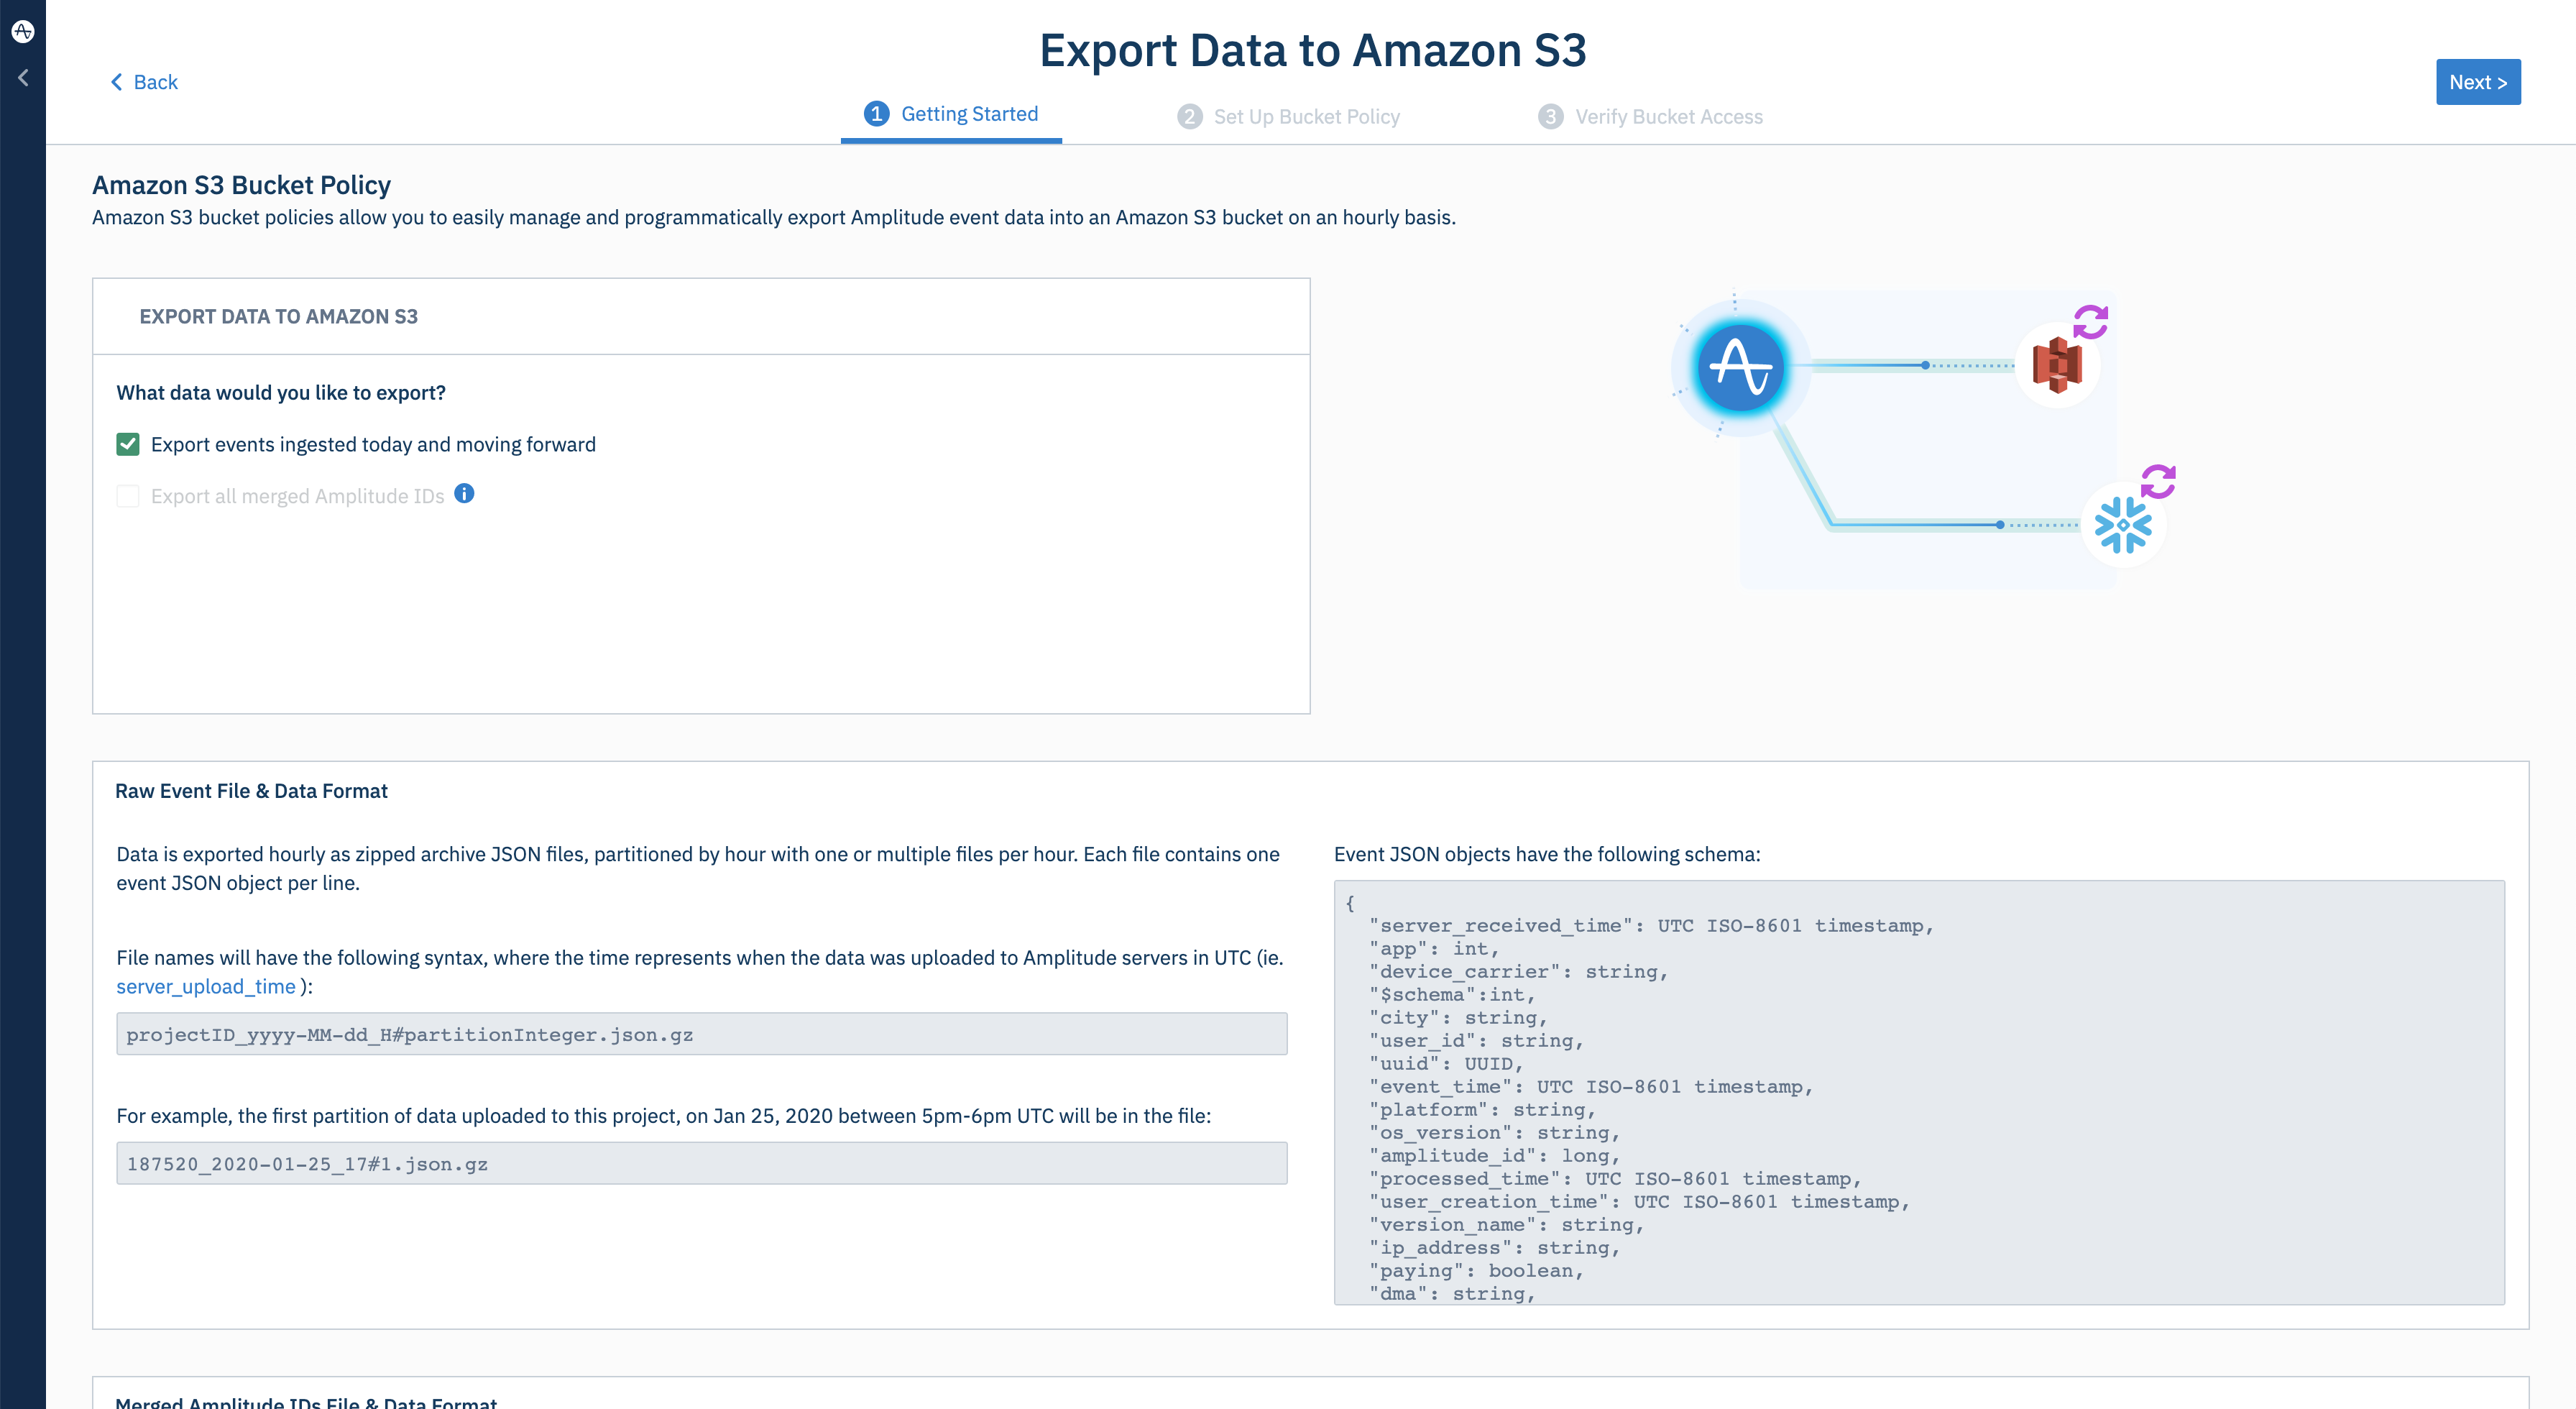 Export_Data_to_Amazon_S3.png